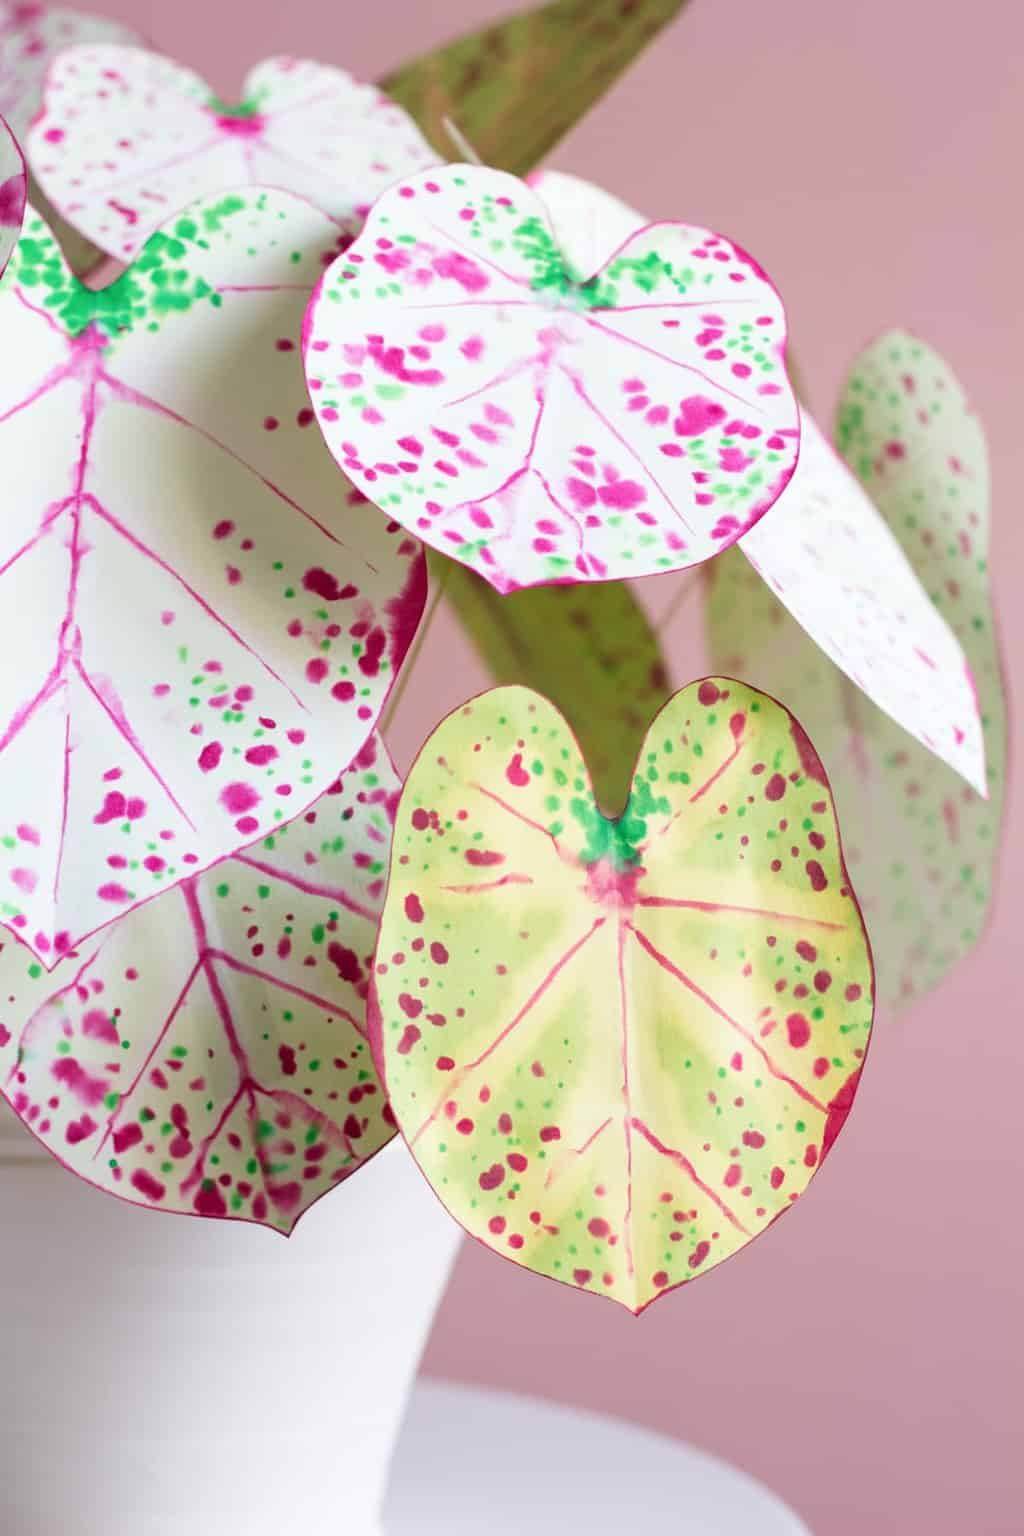 How To Make Paper Plants A Diy Paper Caladium Sugar Cloth